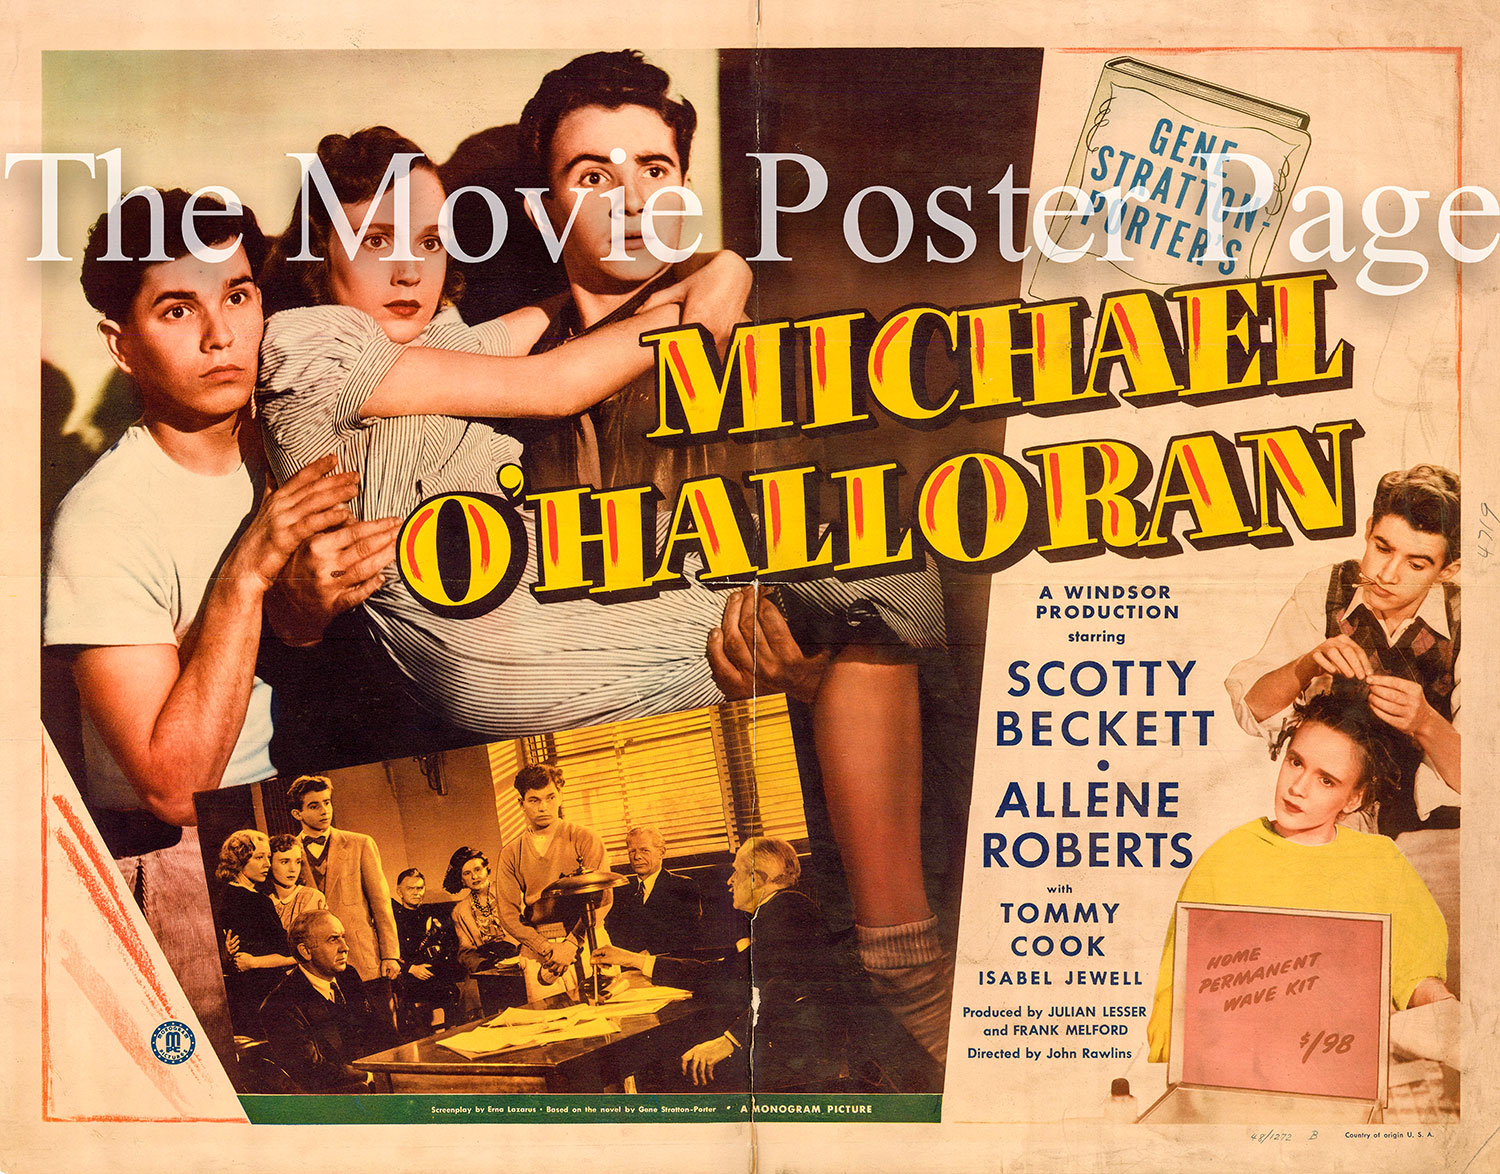 Pictured is a US half-sheet promotional poster for the 1948 John Rawlins film Michael O'Halloran starring Scotty Beckett based on the novel by Gene Stratton-Porter.